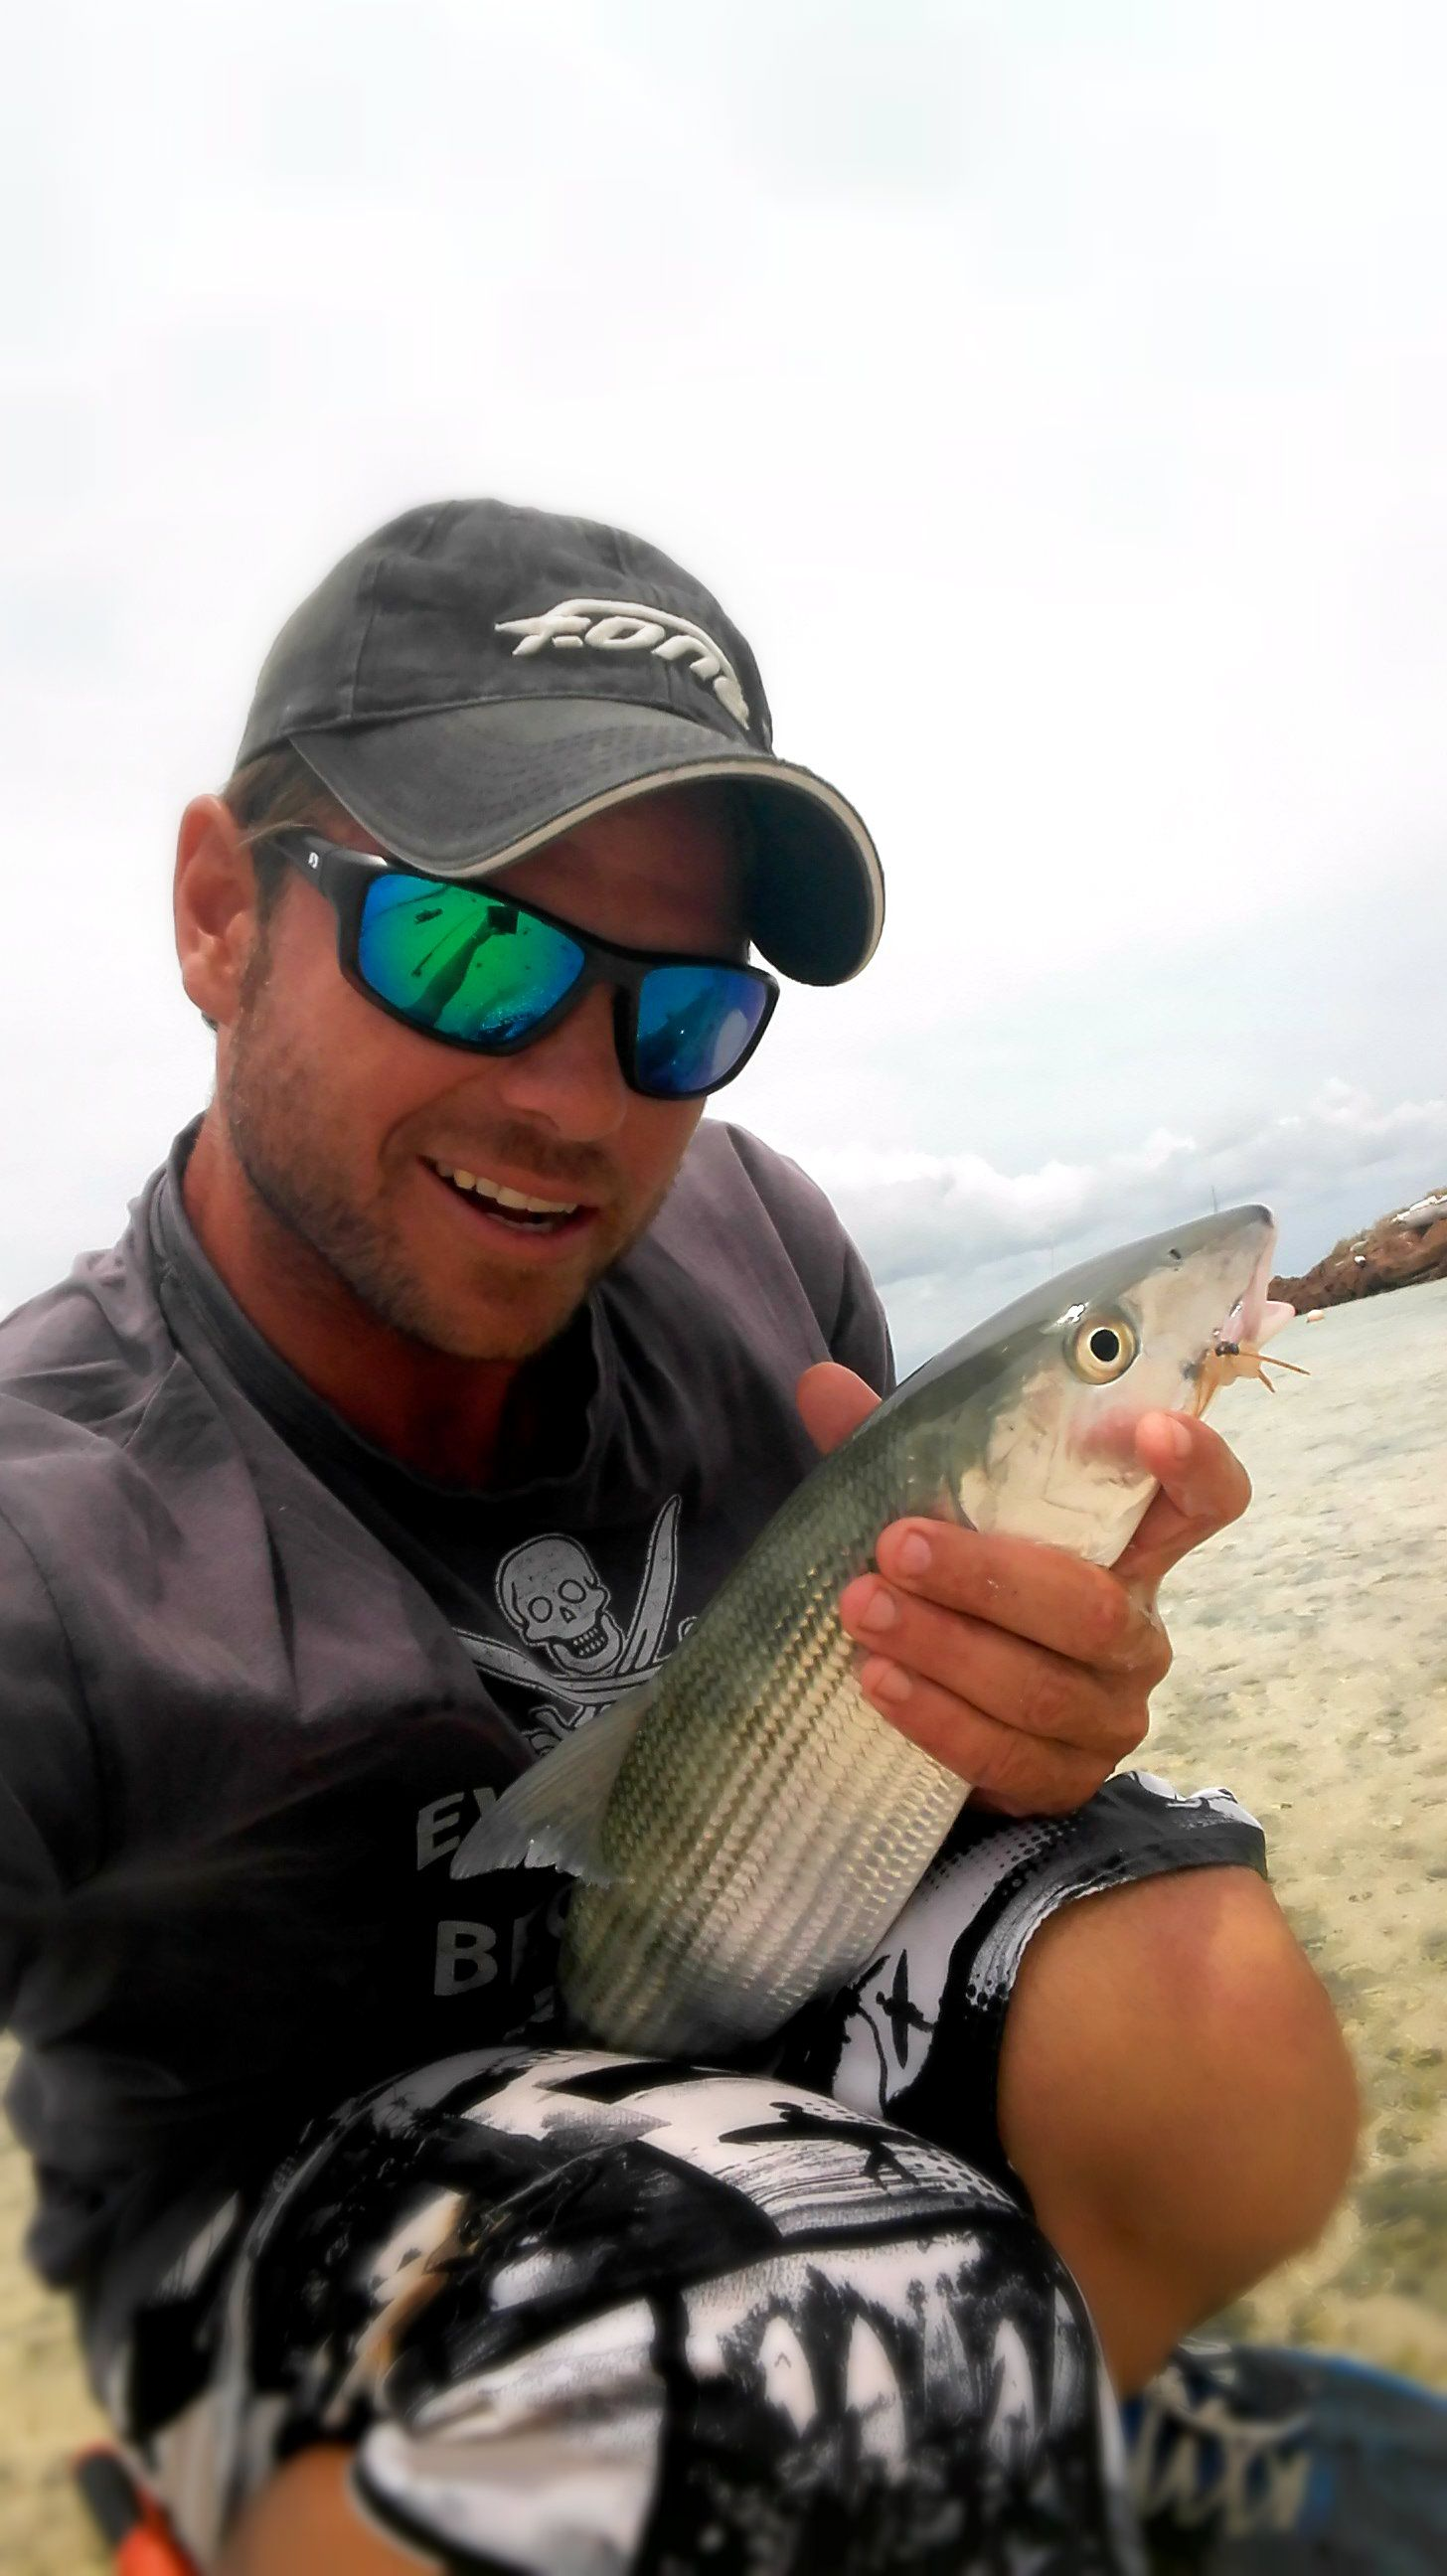 Amazing Fly Fishing Session This Morning With Serious Bonefish Around Can T Wait The Next One Bonefish Flyfish Fly Fishing Fishing Vacation Saltwater Flies